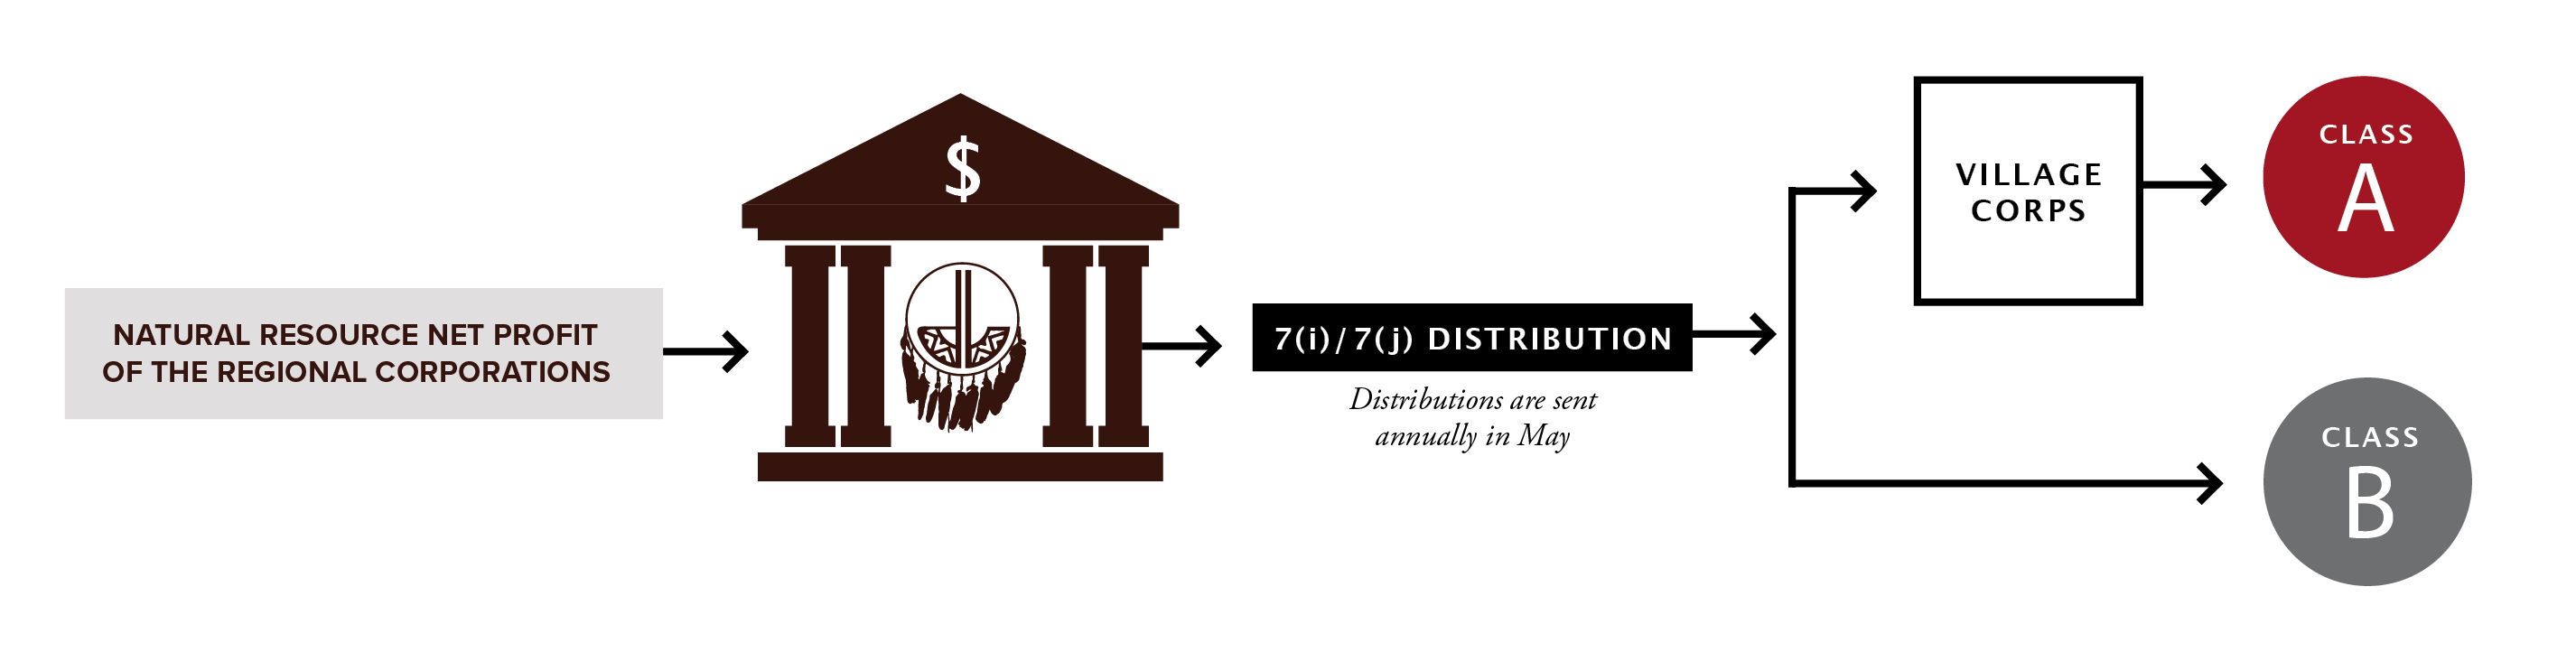 Flow chart of fund distribution.